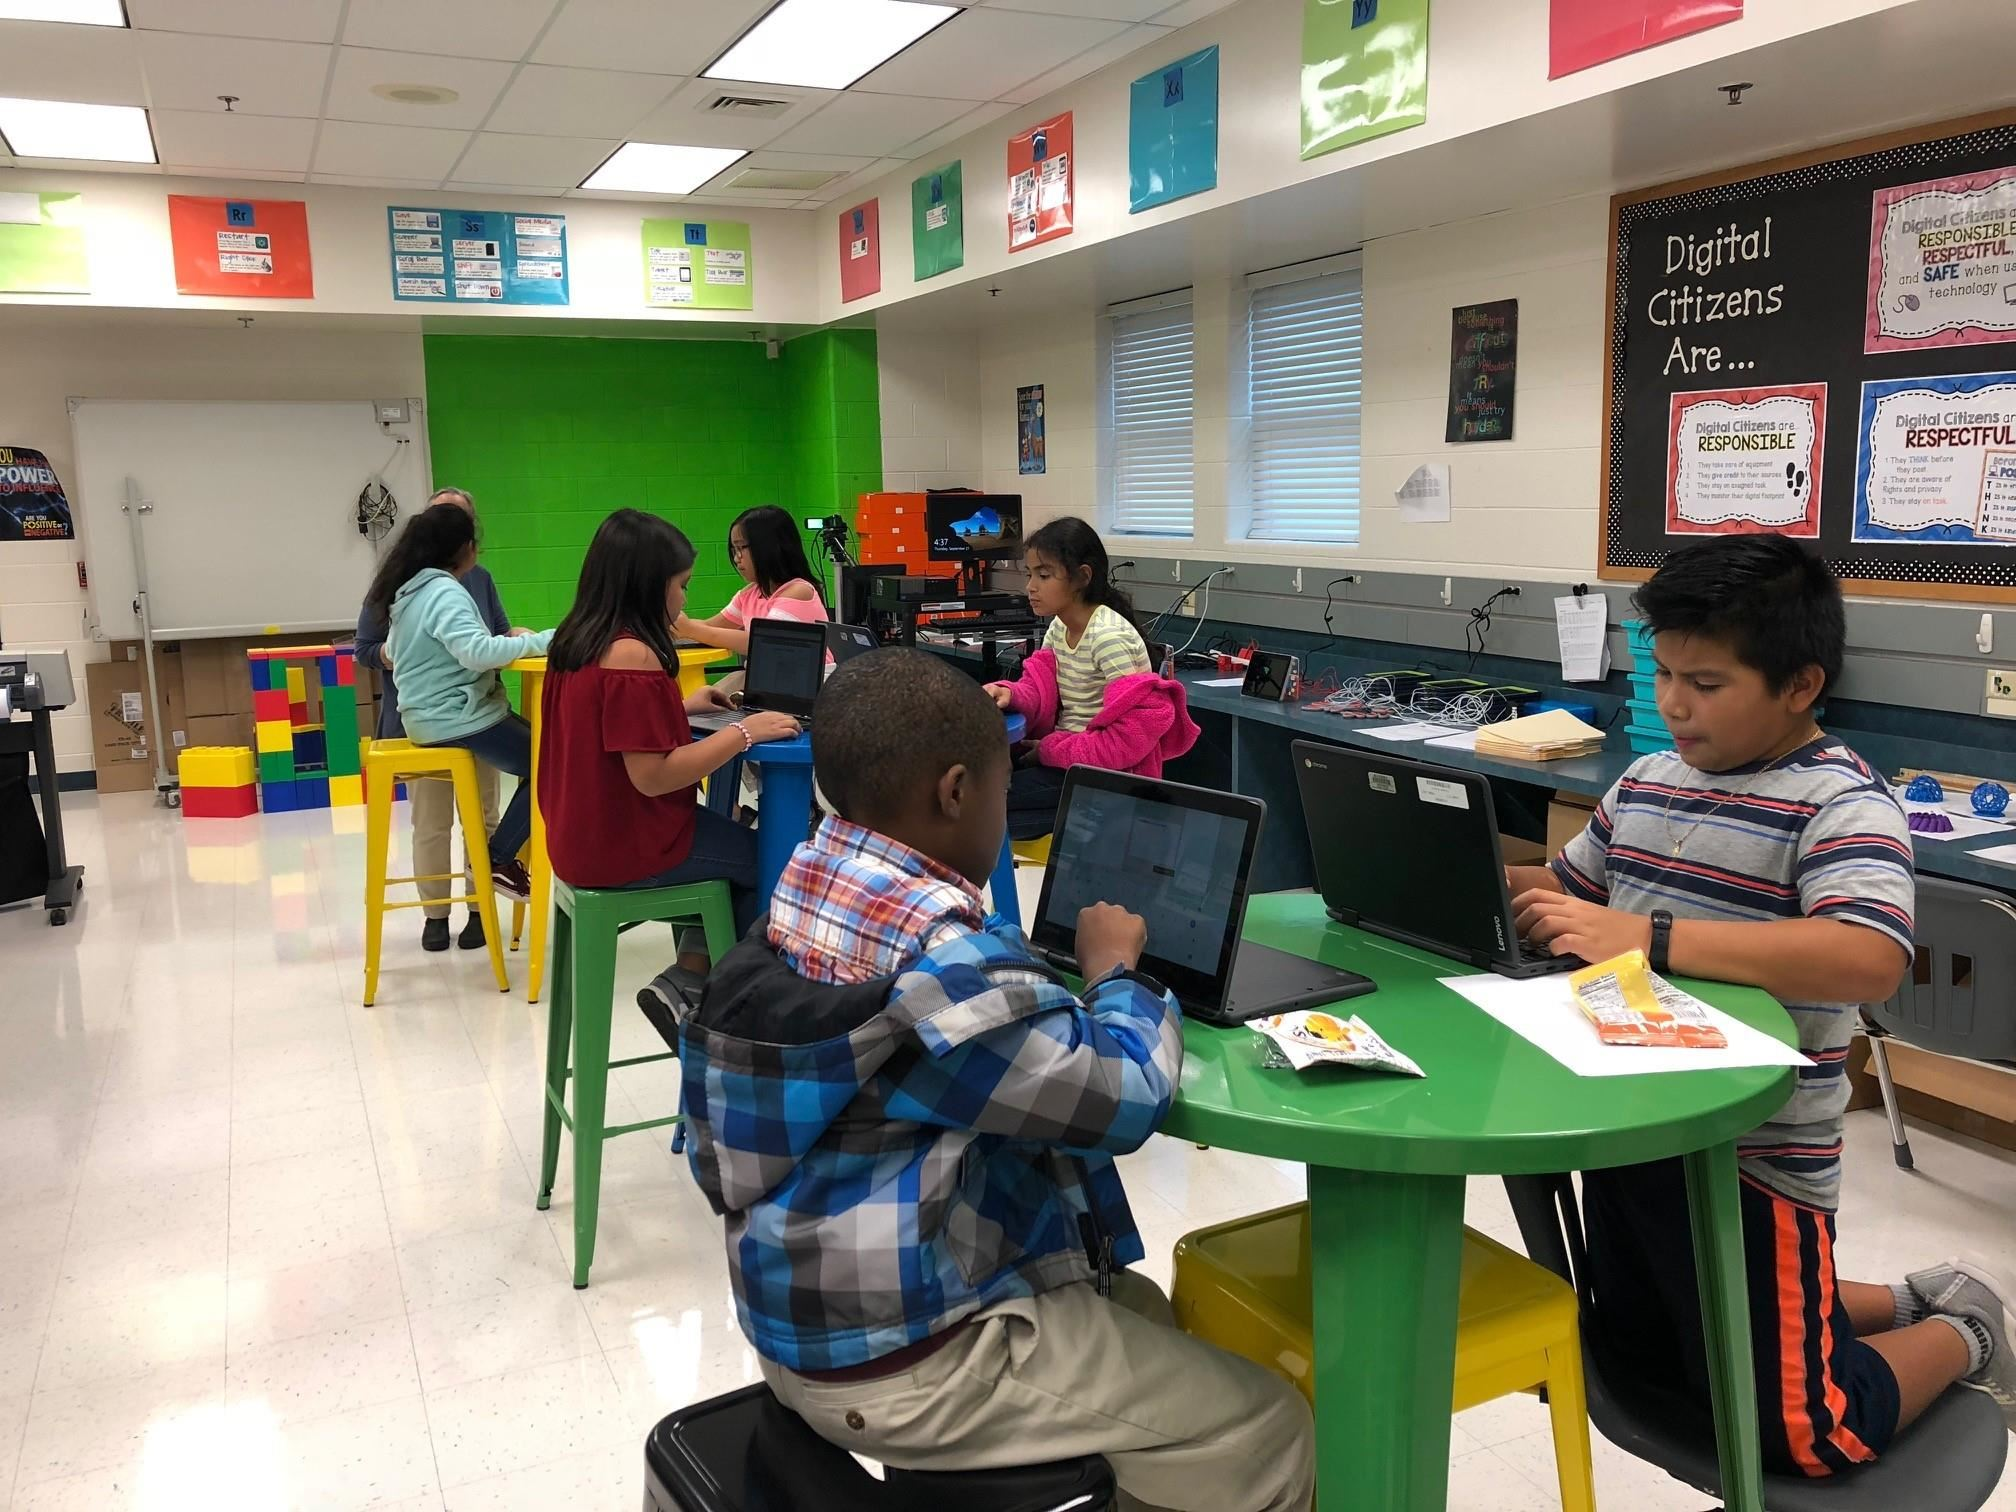 Blogging in the new STEAM lab